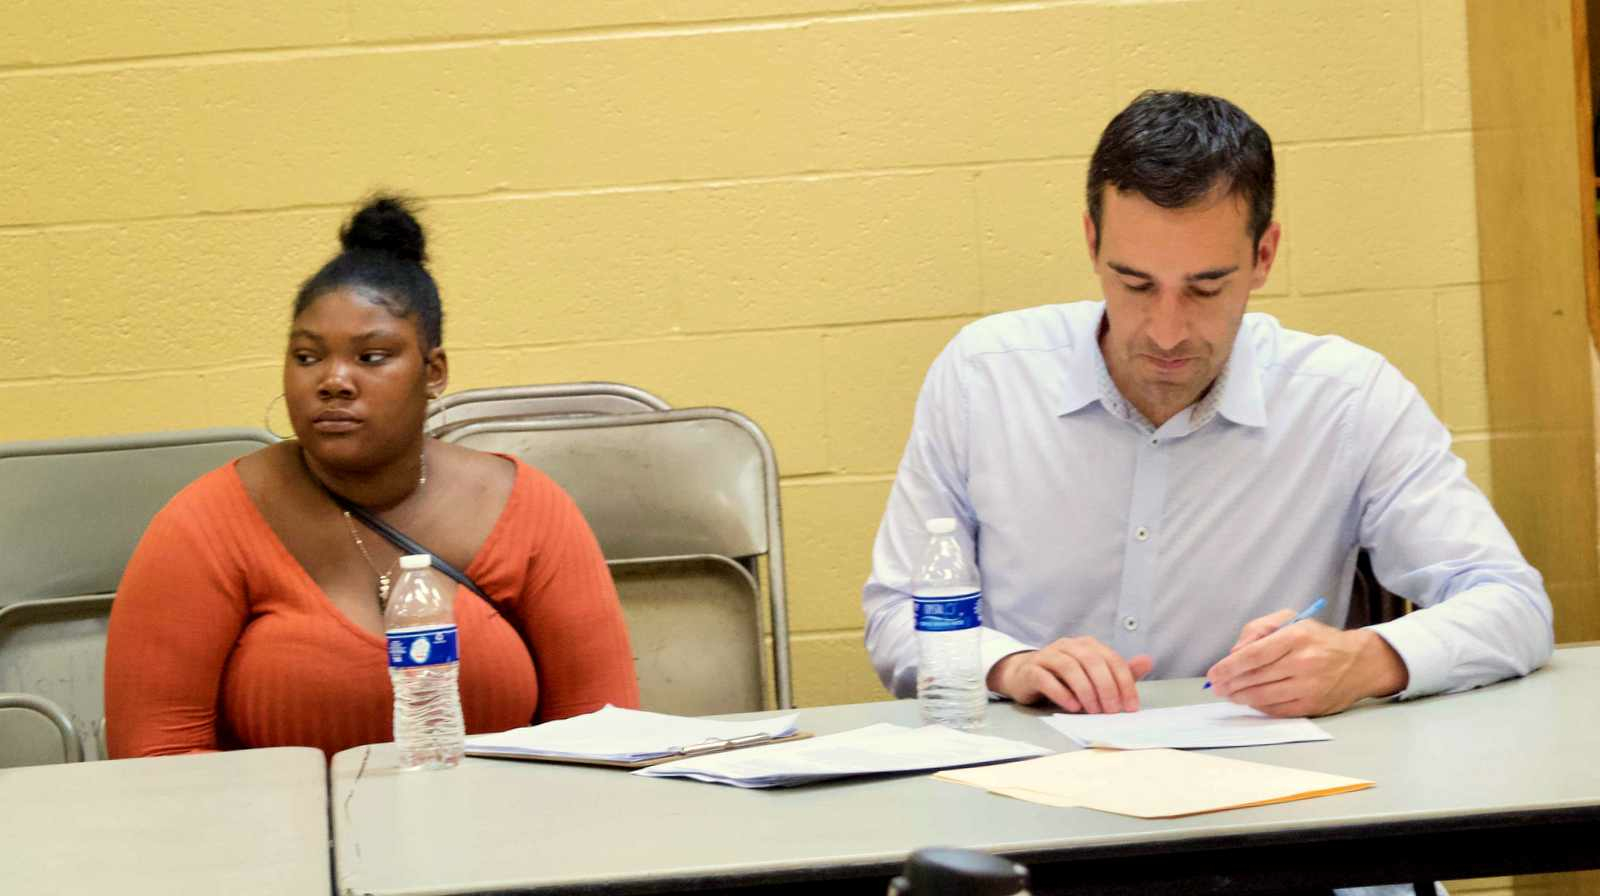 Byronna Harris says the counseling done after last February's shooting at Frederick Douglass High School was of minimal value. Sitting to her left is Councilman Zeke Cohen. (Lizzie Kane)